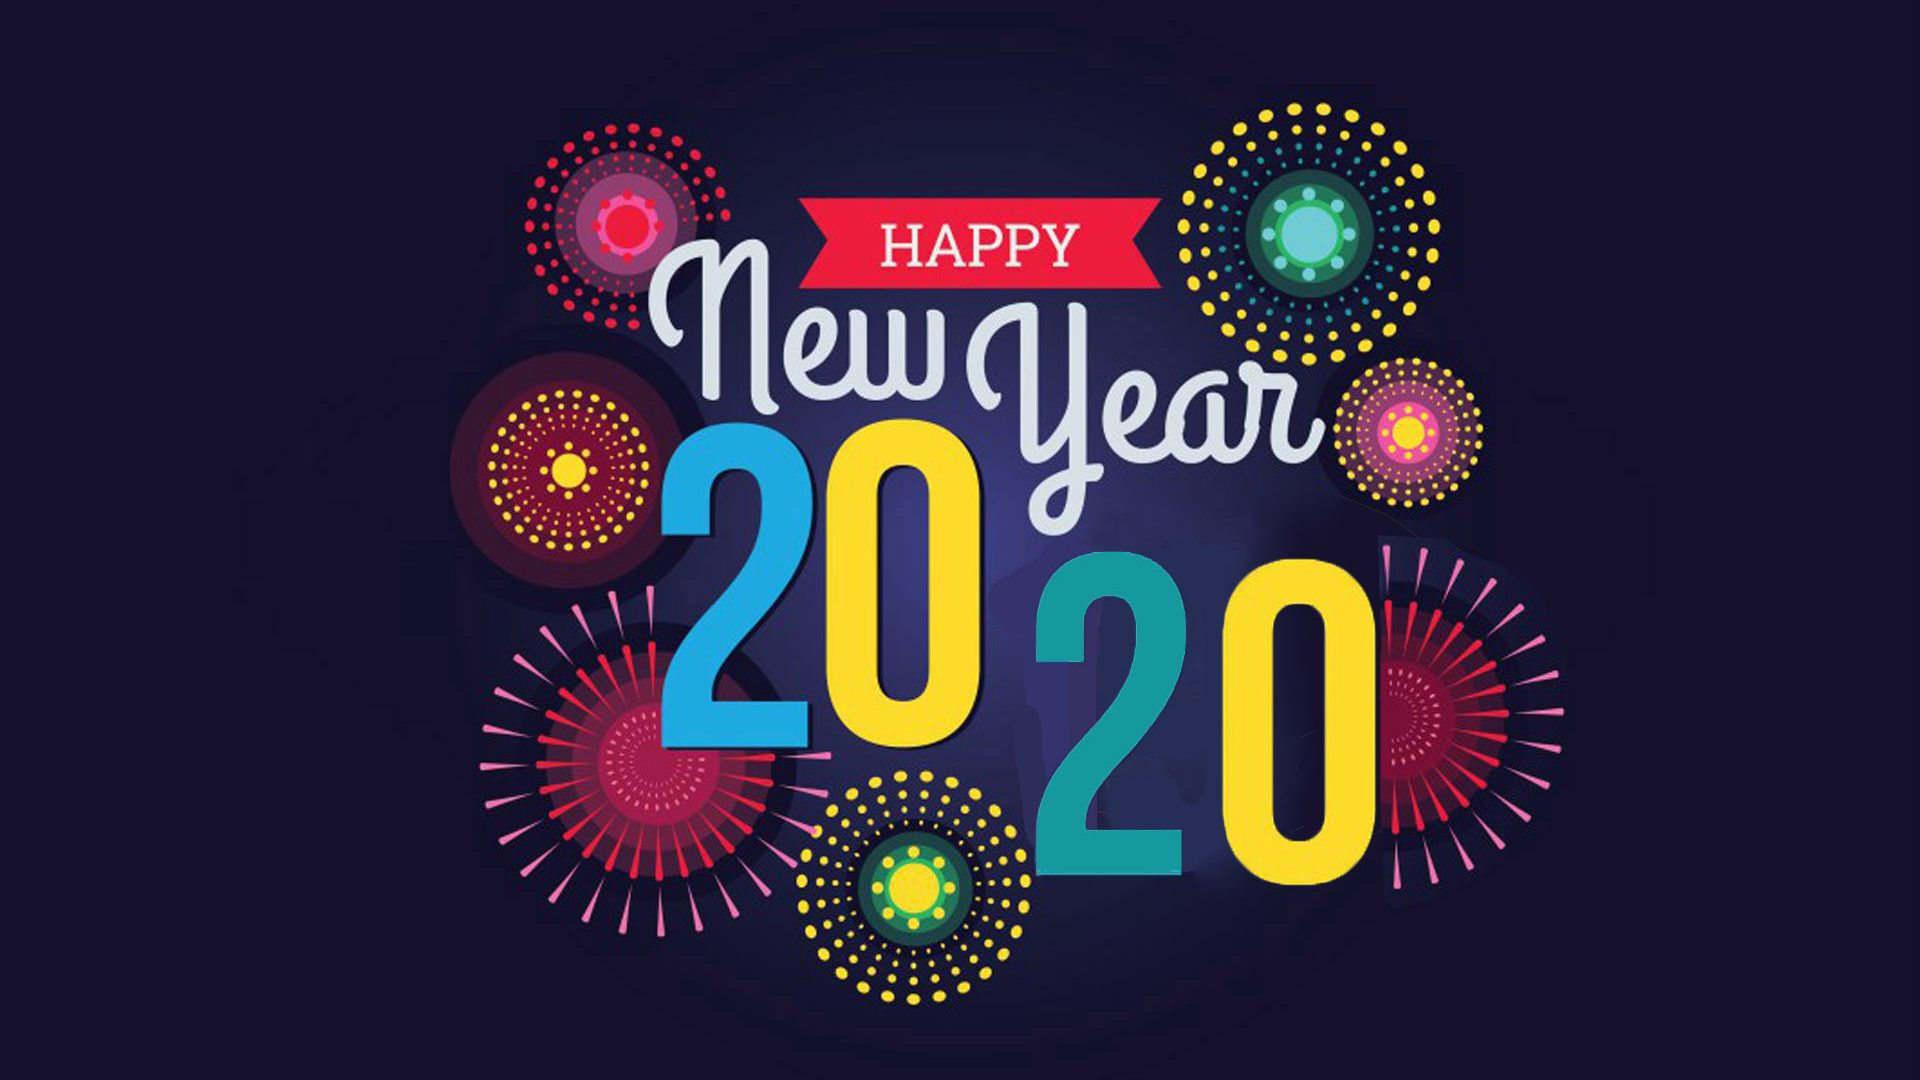 Happy New Year 2020 Wallpaper and Background